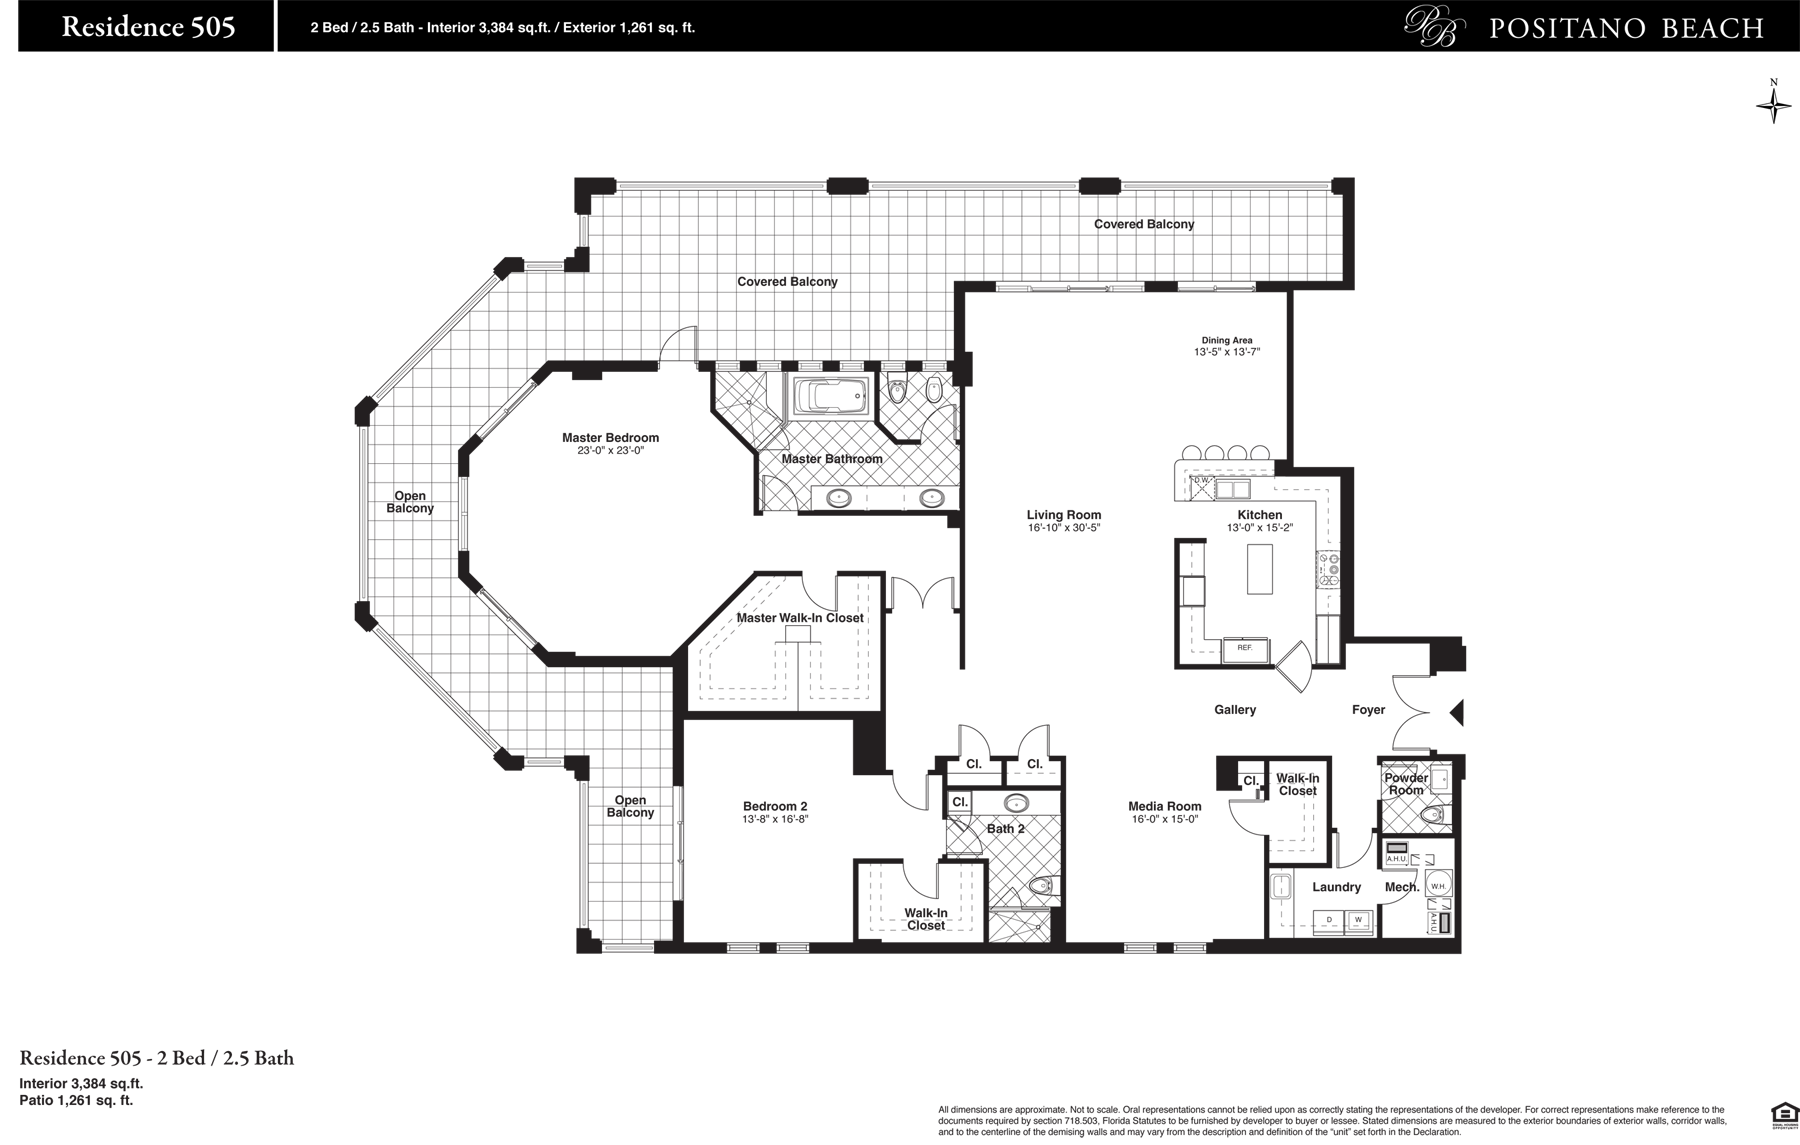 Positano Beach - Floorplan 7